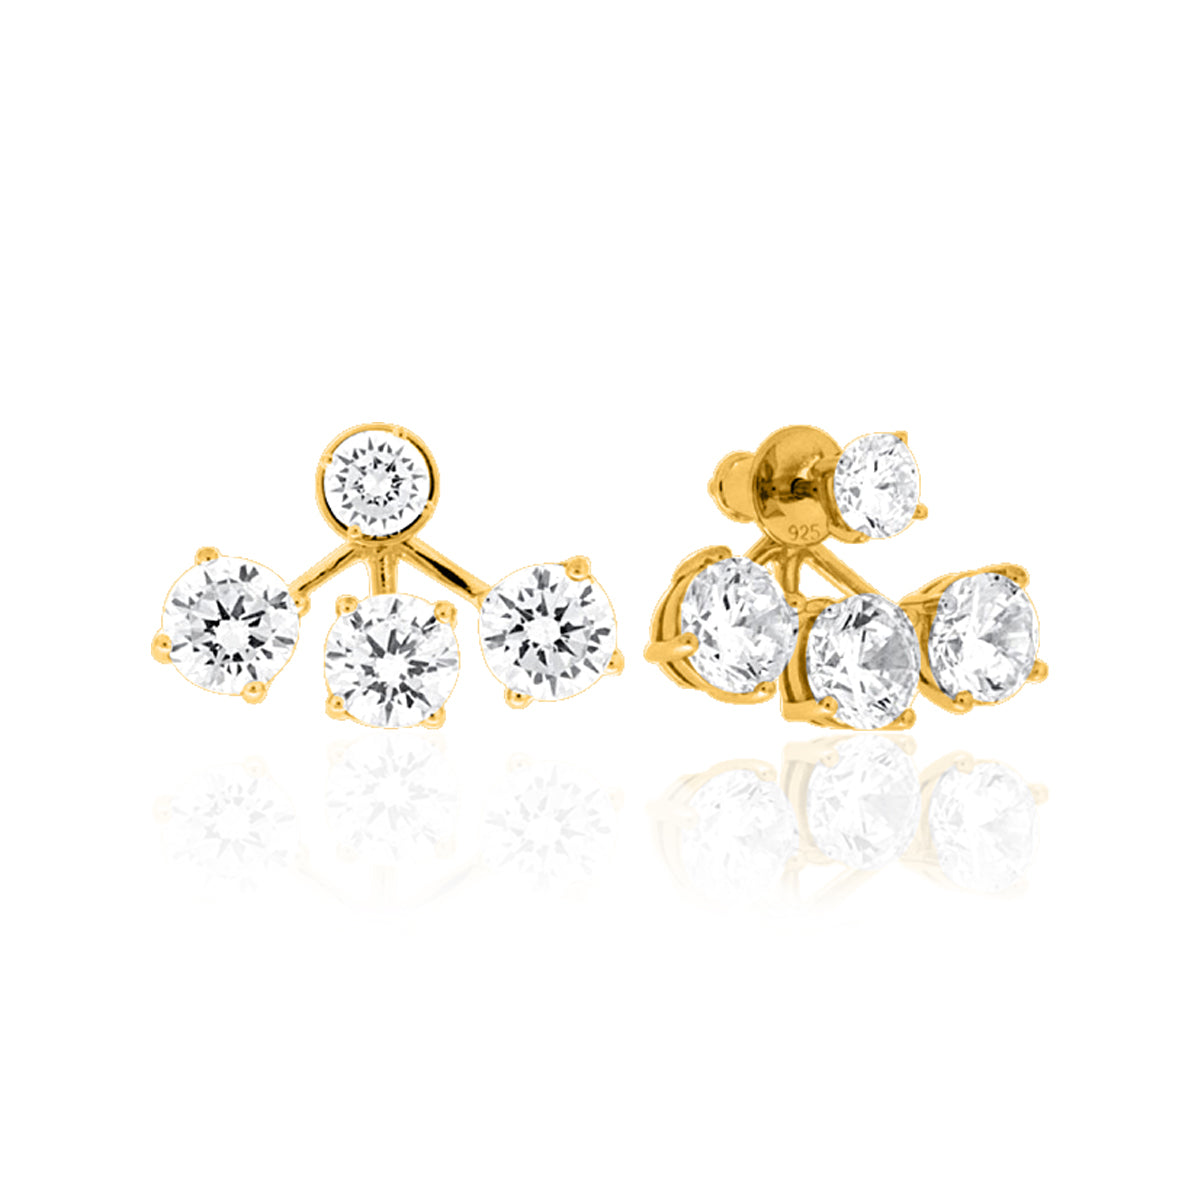 RODEO 3 STONE DROP FRONT/BACK EARRING - The Firestone Collection - Fashion Jewelry & Accessories